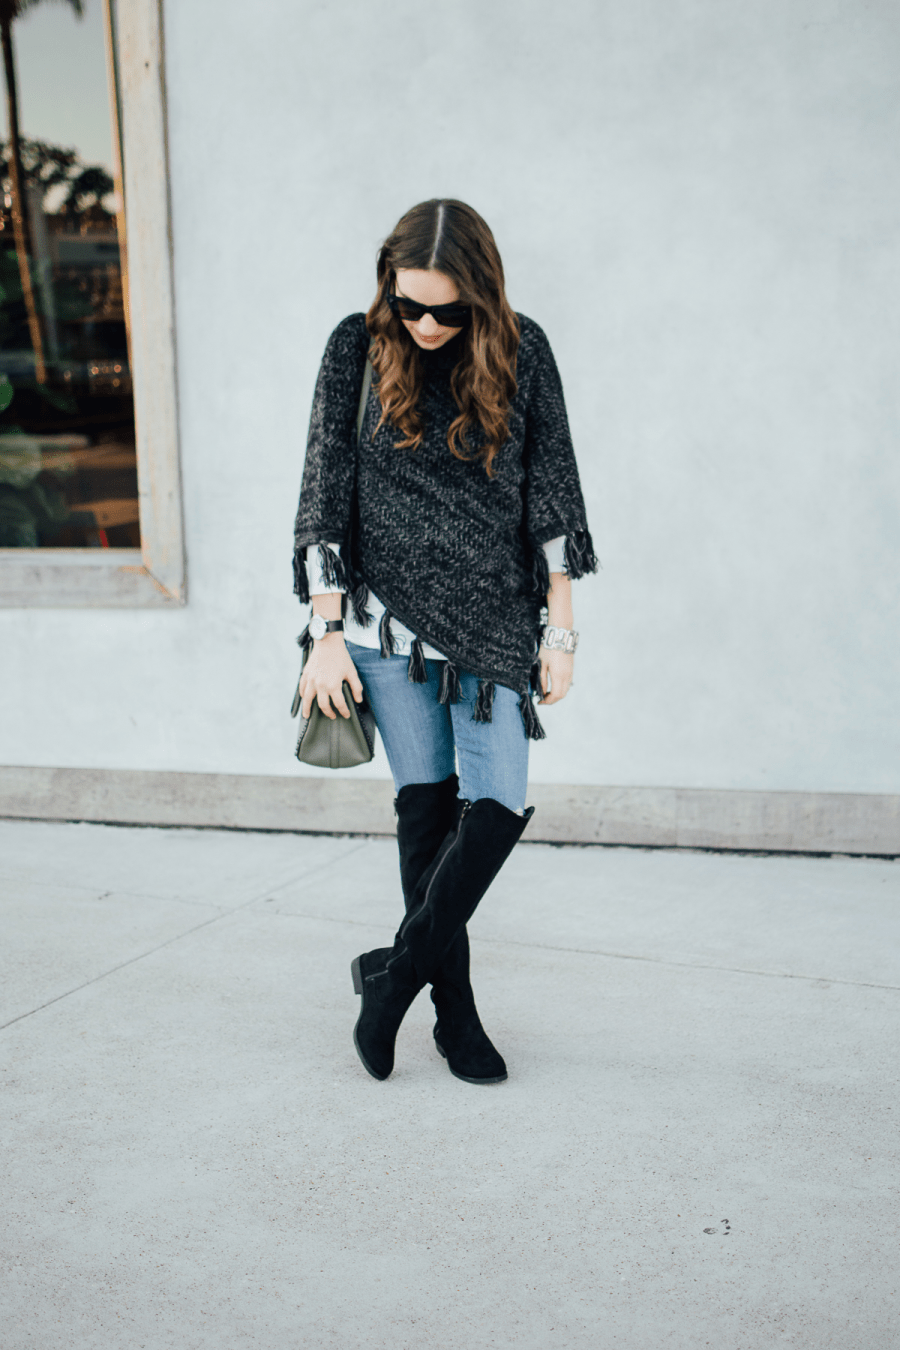 Texas blogger shares fall outfit inspiration with a fringe poncho and black over the knee boots from Macy's and Style&Co.